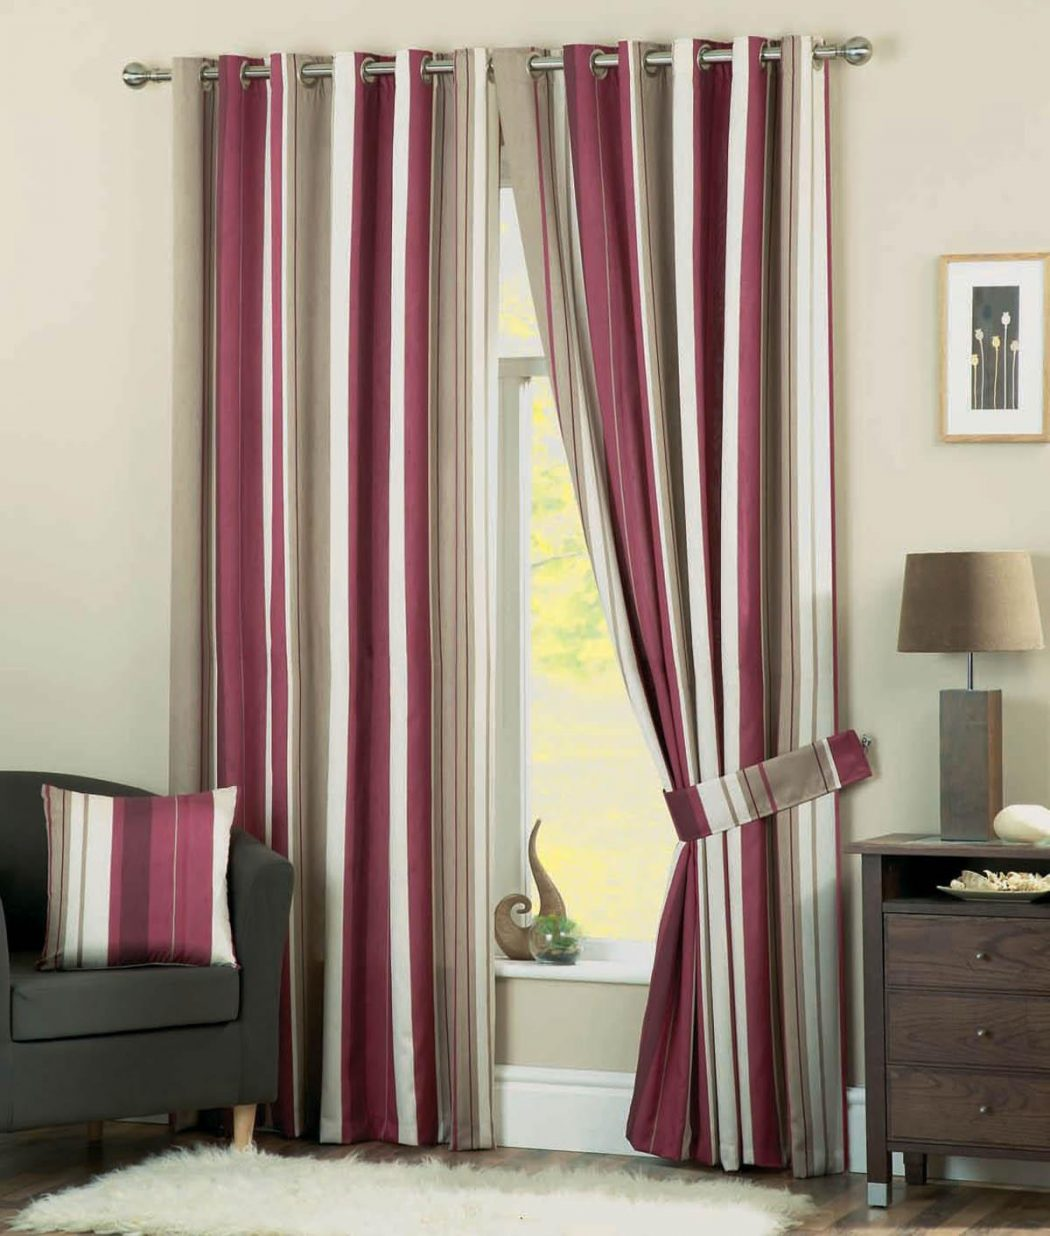 Whitworth-Claret 20+ Hottest Curtain Designs for 2018